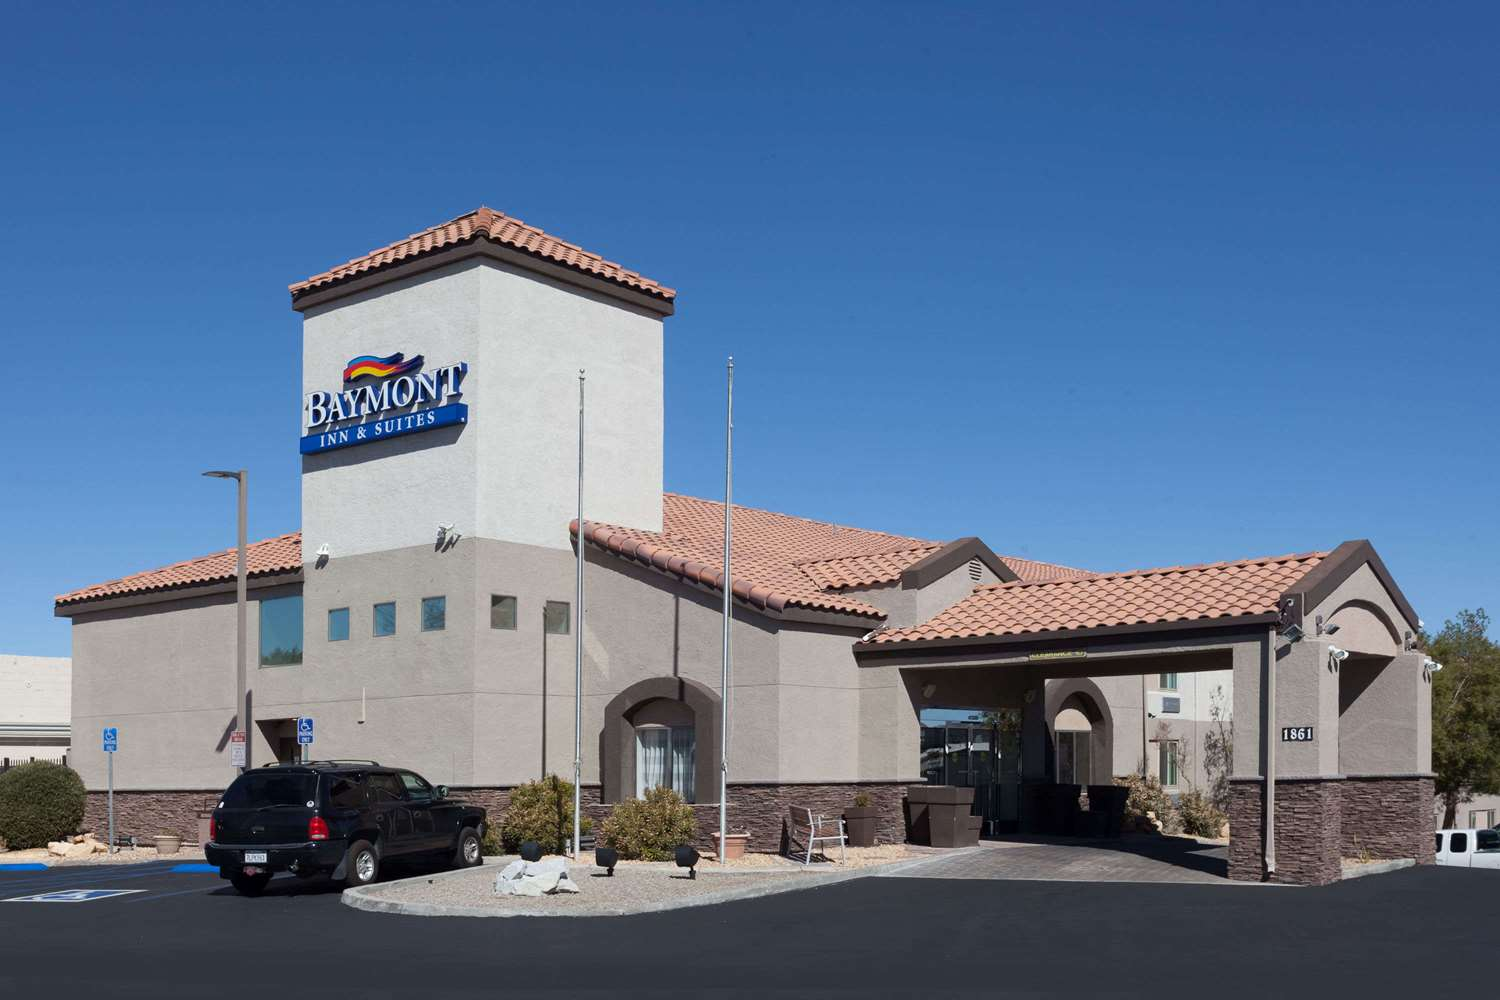 Exterior view - Baymont Inn & Suites Historic Route 66 Barstow